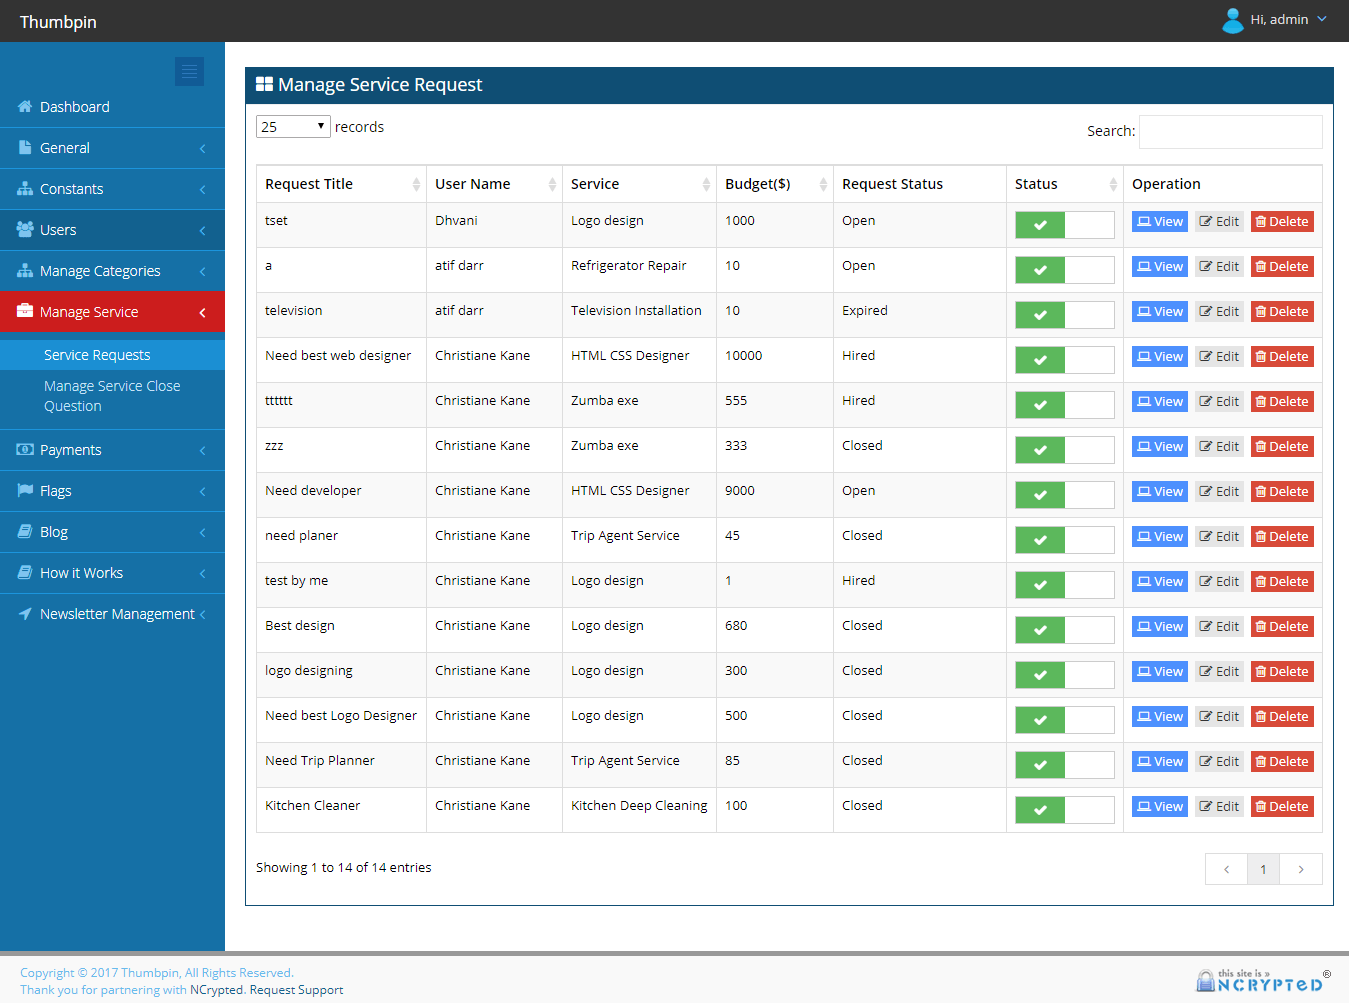 Service Notifications Based on Service Criteria